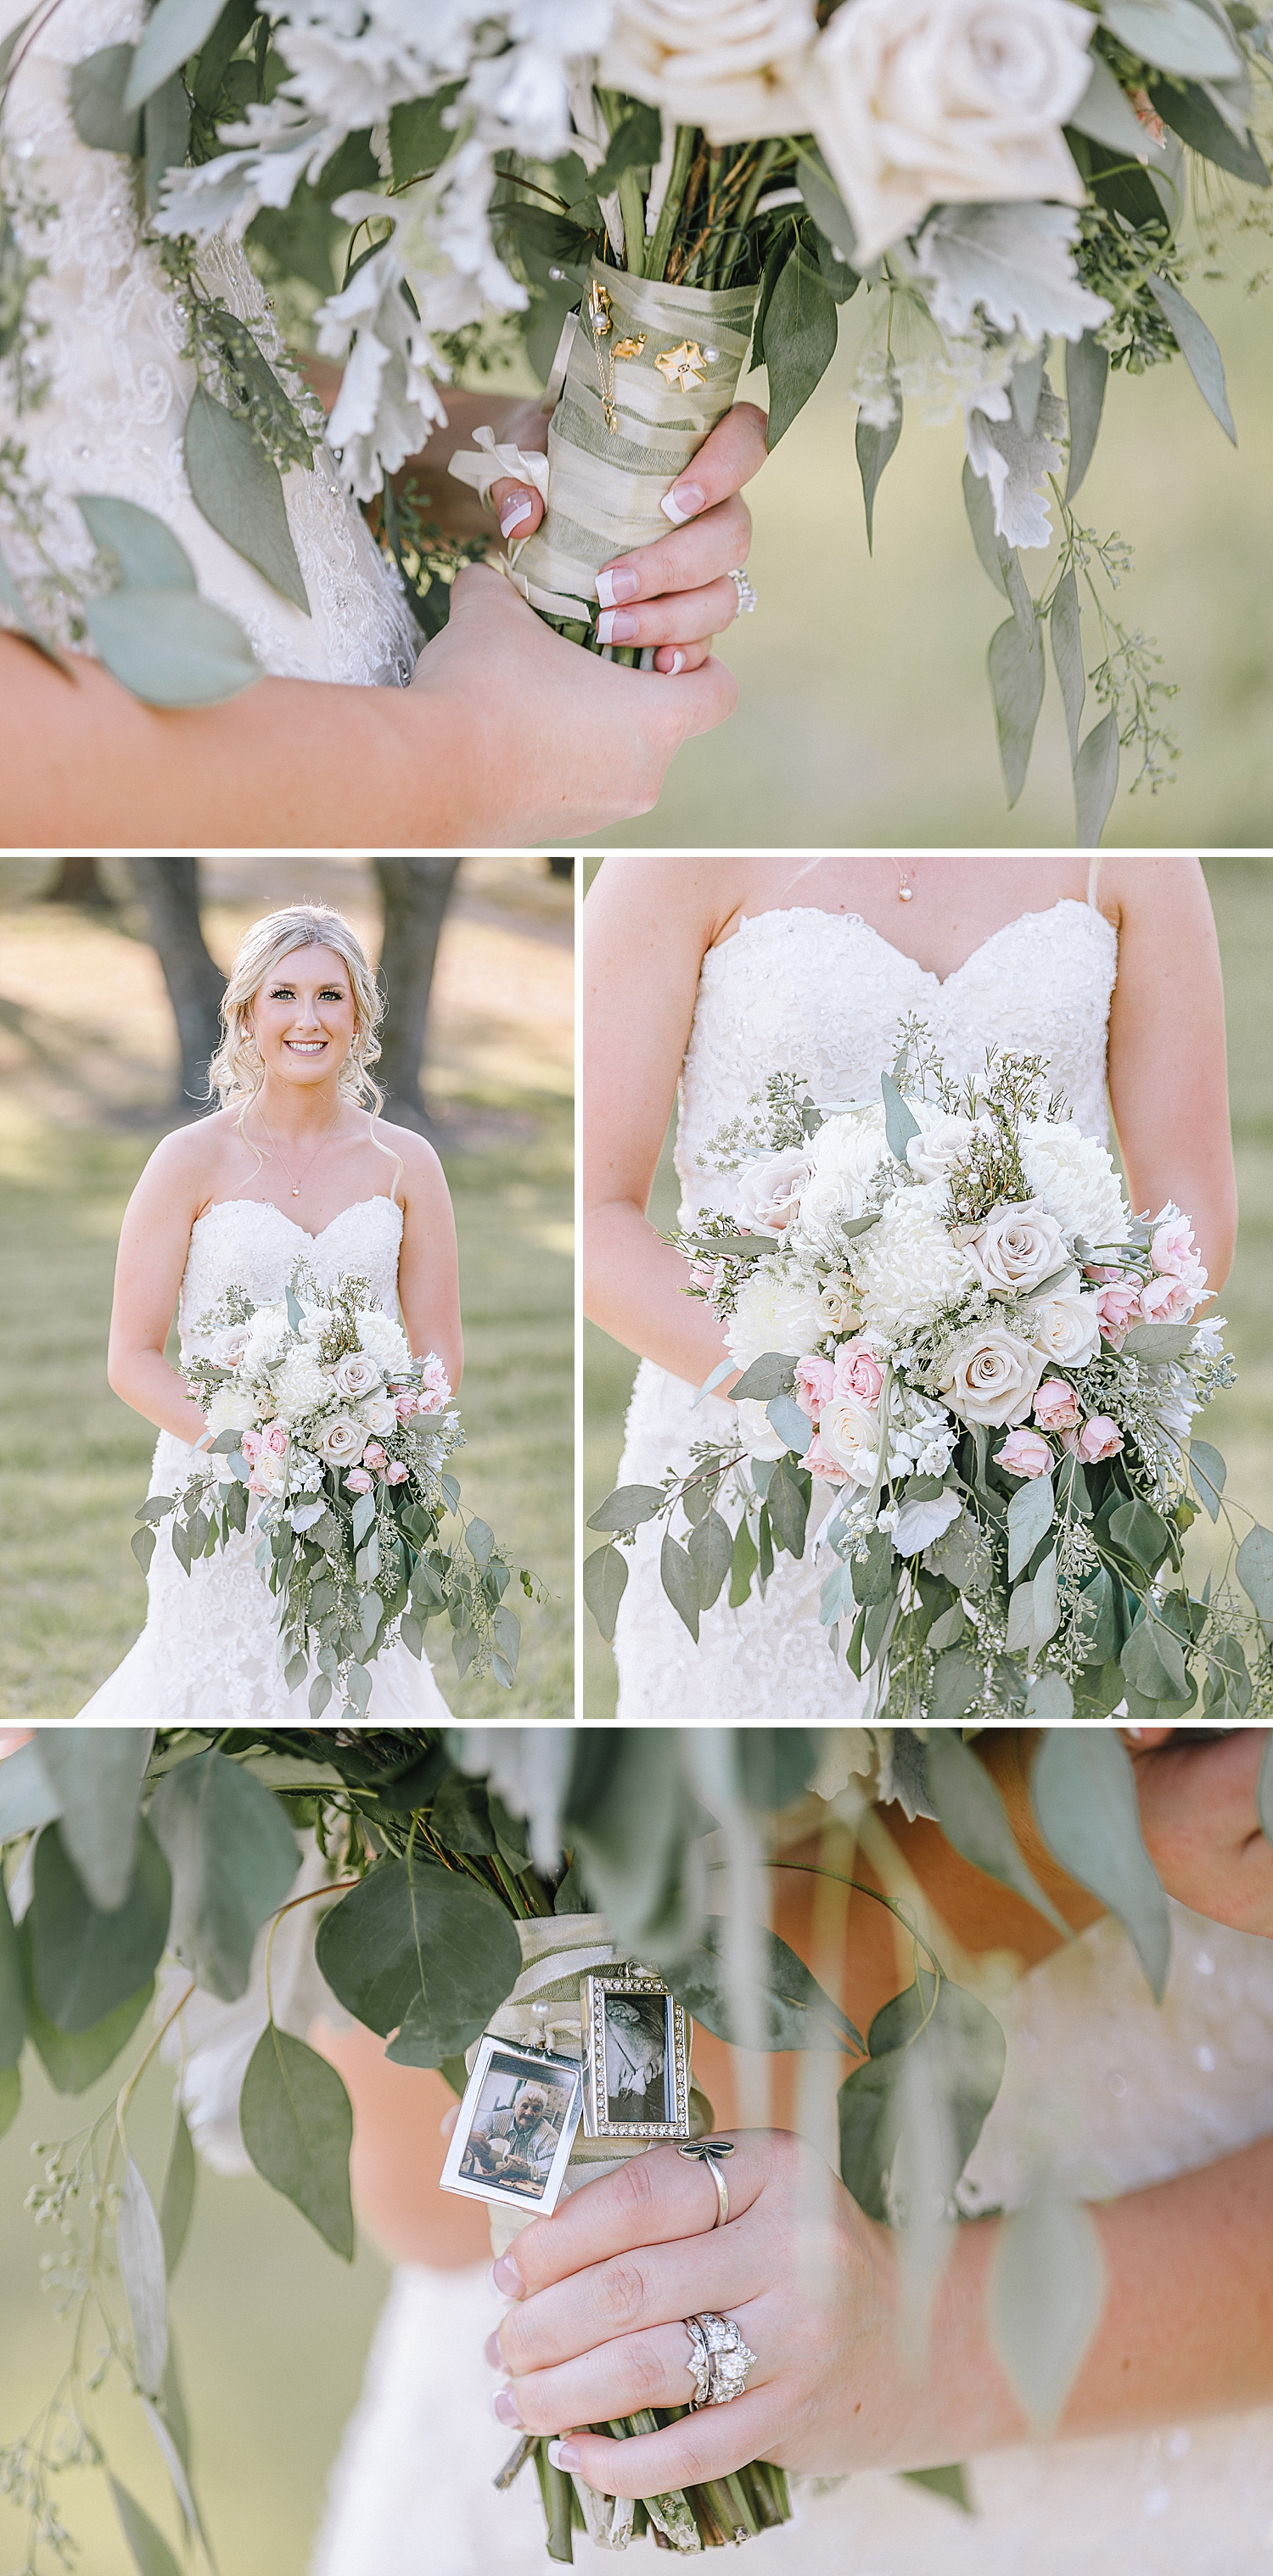 Rackler-Ranch-LaVernia-Texas-Wedding-Carly-Barton-Photography_0106.jpg